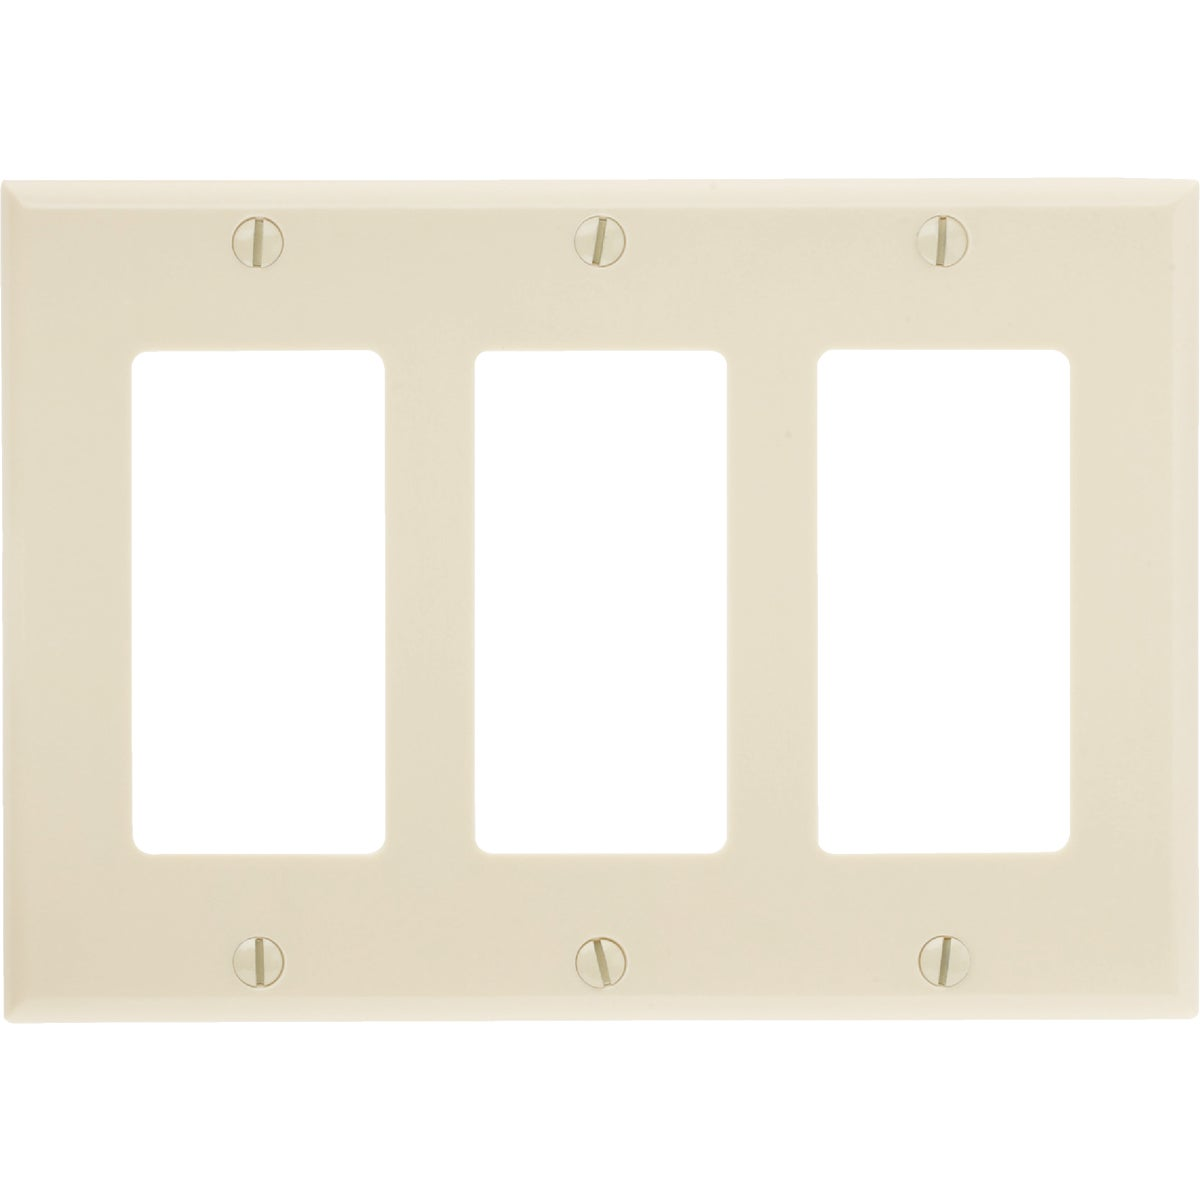 IV 3-ROCKER WALL PLATE - 80411I by Leviton Mfg Co